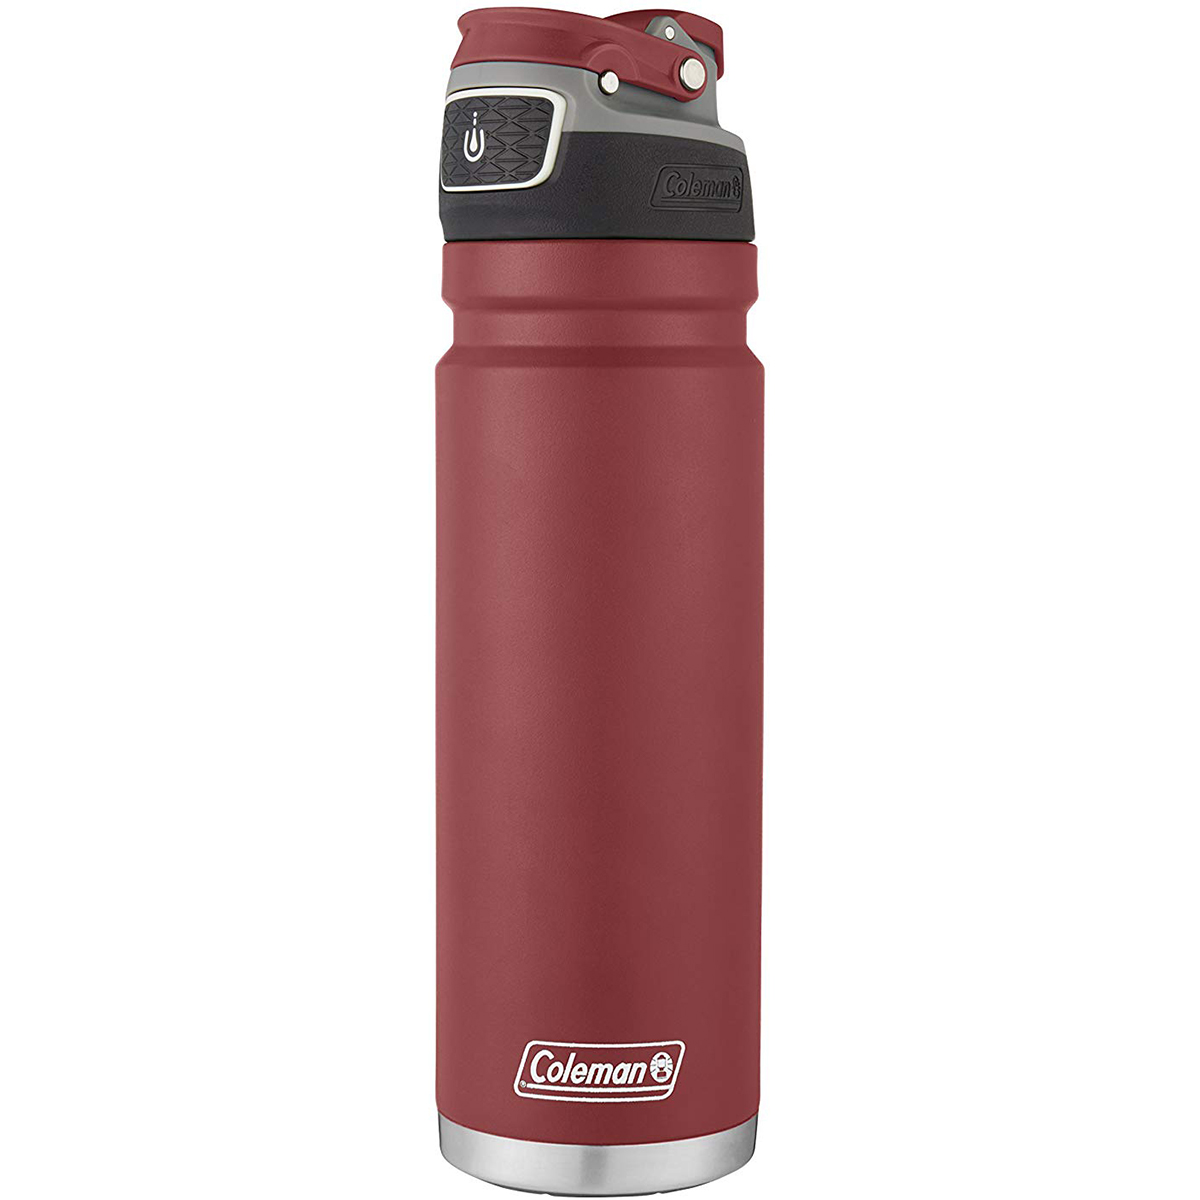 Coleman-24-oz-Free-Flow-Autoseal-Insulated-Stainless-Steel-Water-Bottle thumbnail 11